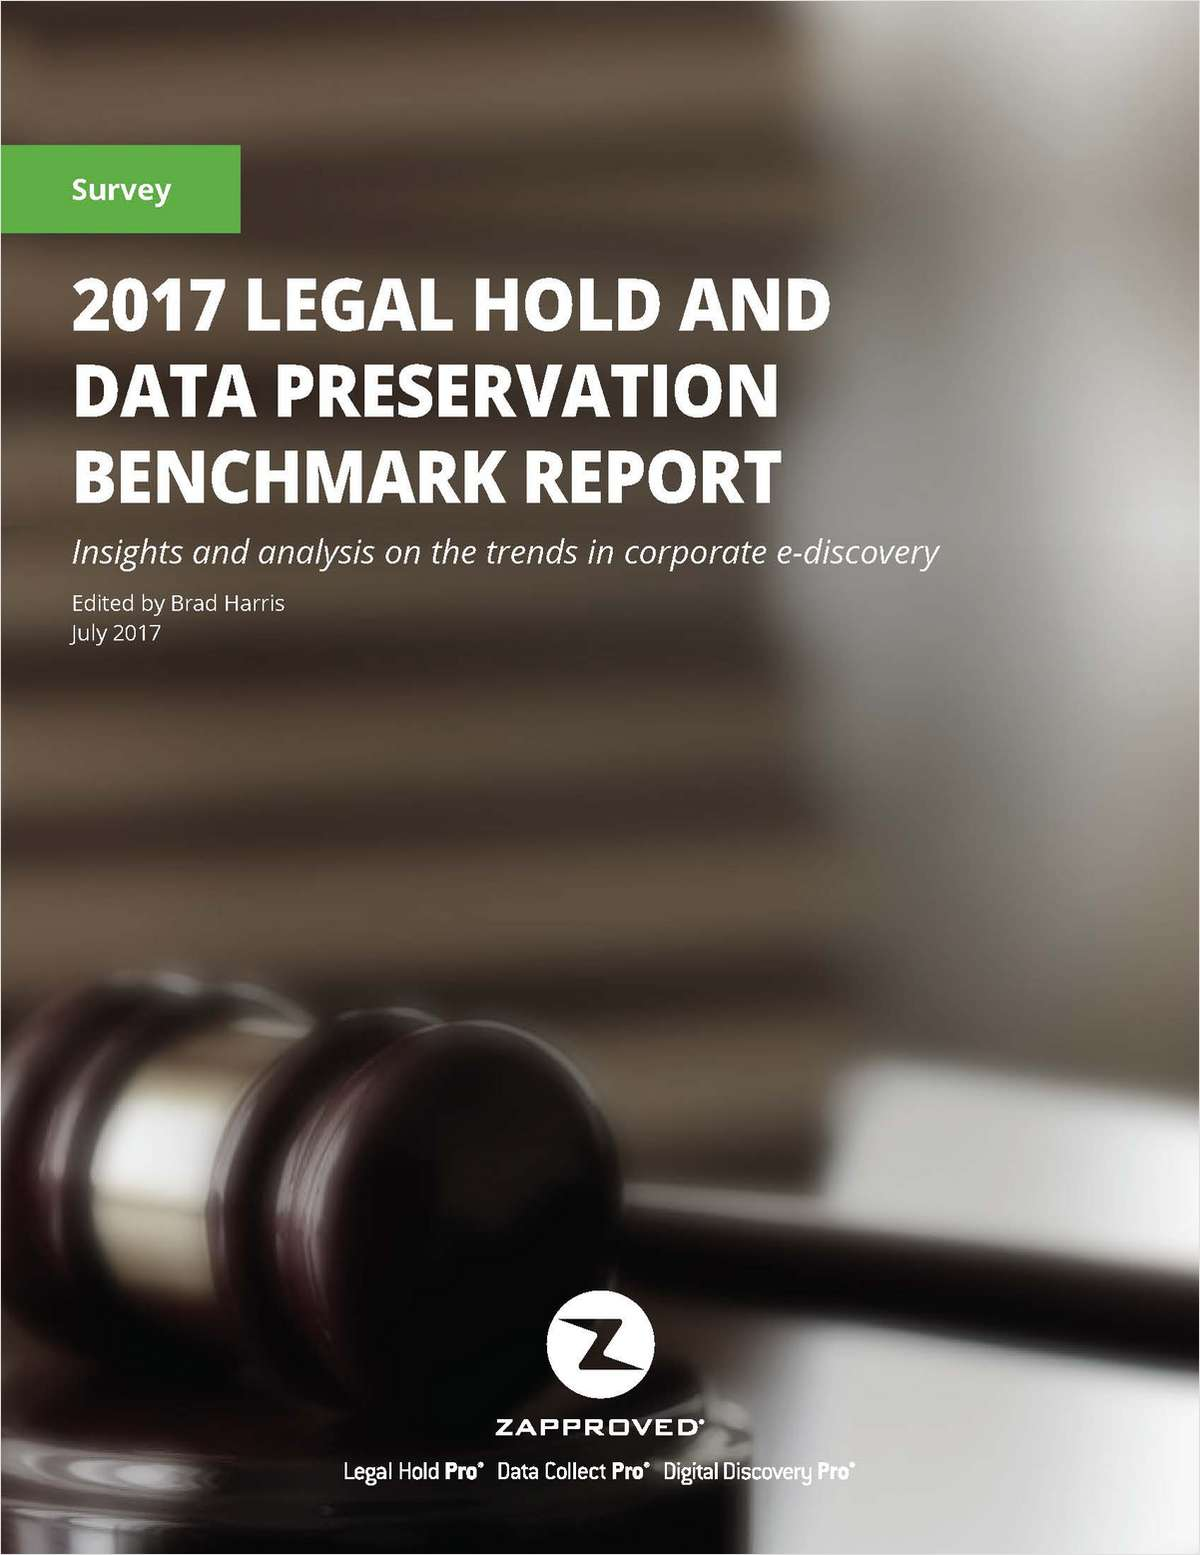 2017 Legal Hold and Data Preservation Benchmark Report